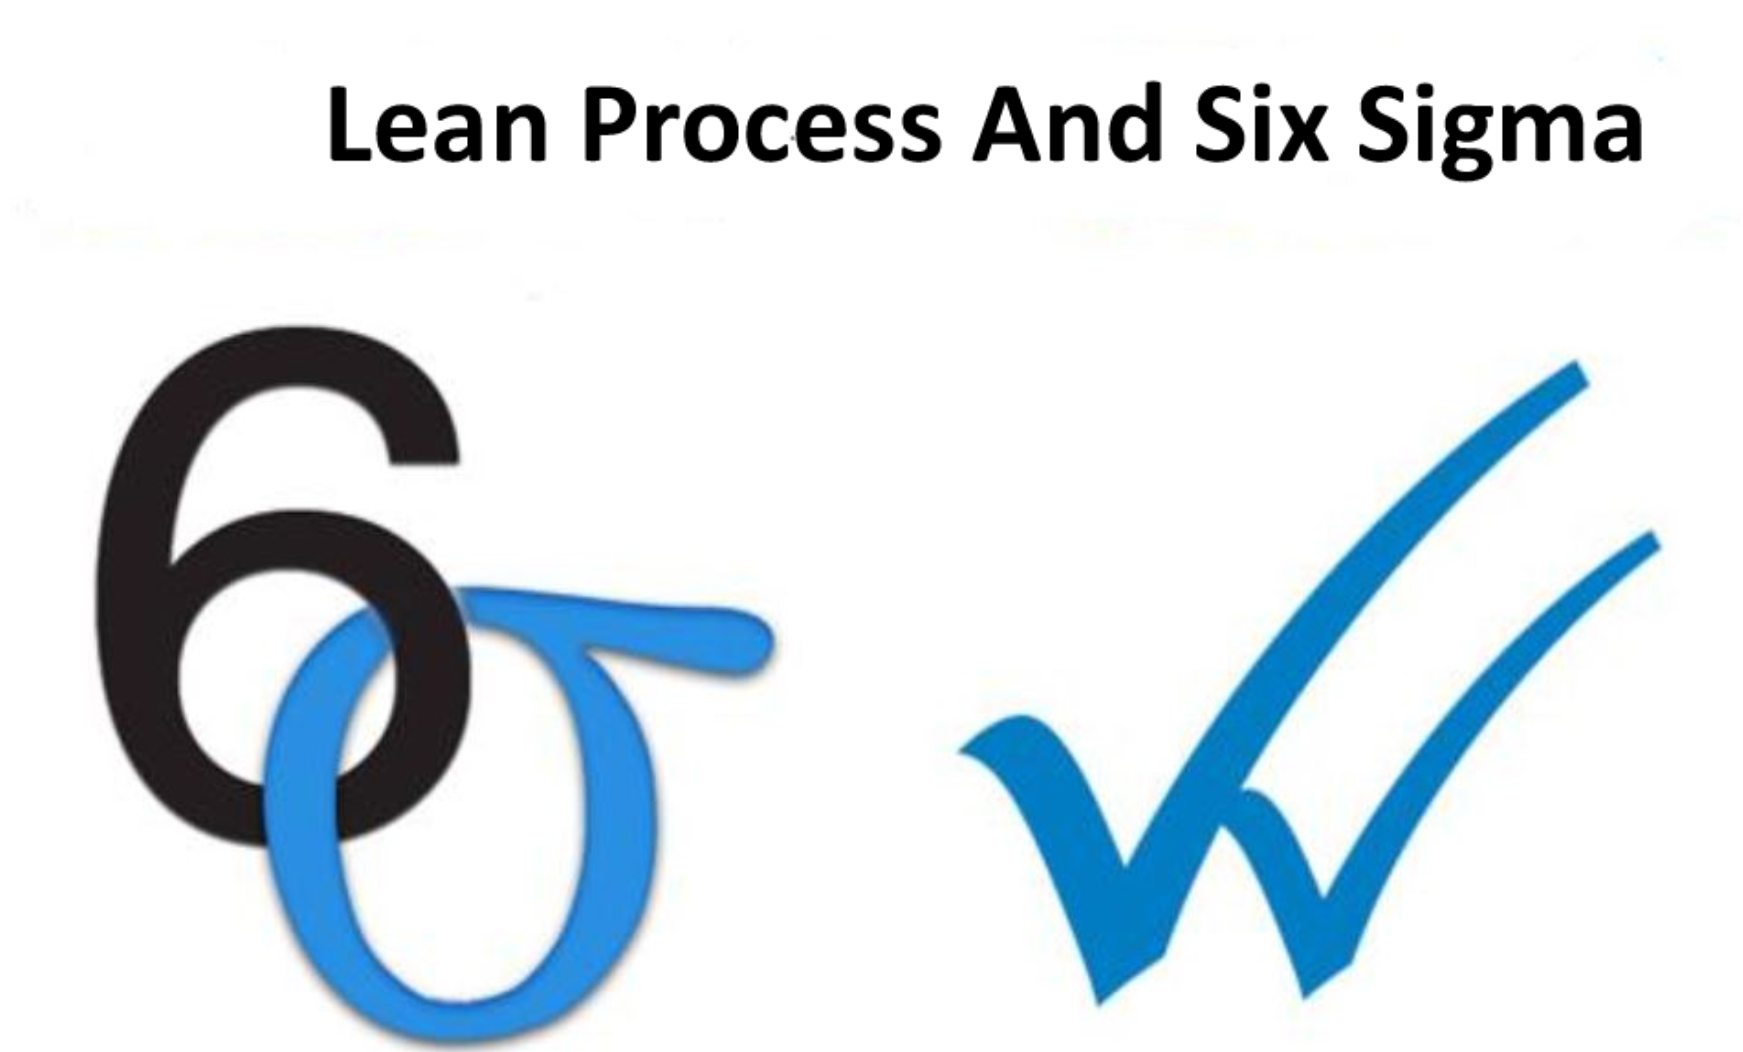 Lean Process & Six Sigma